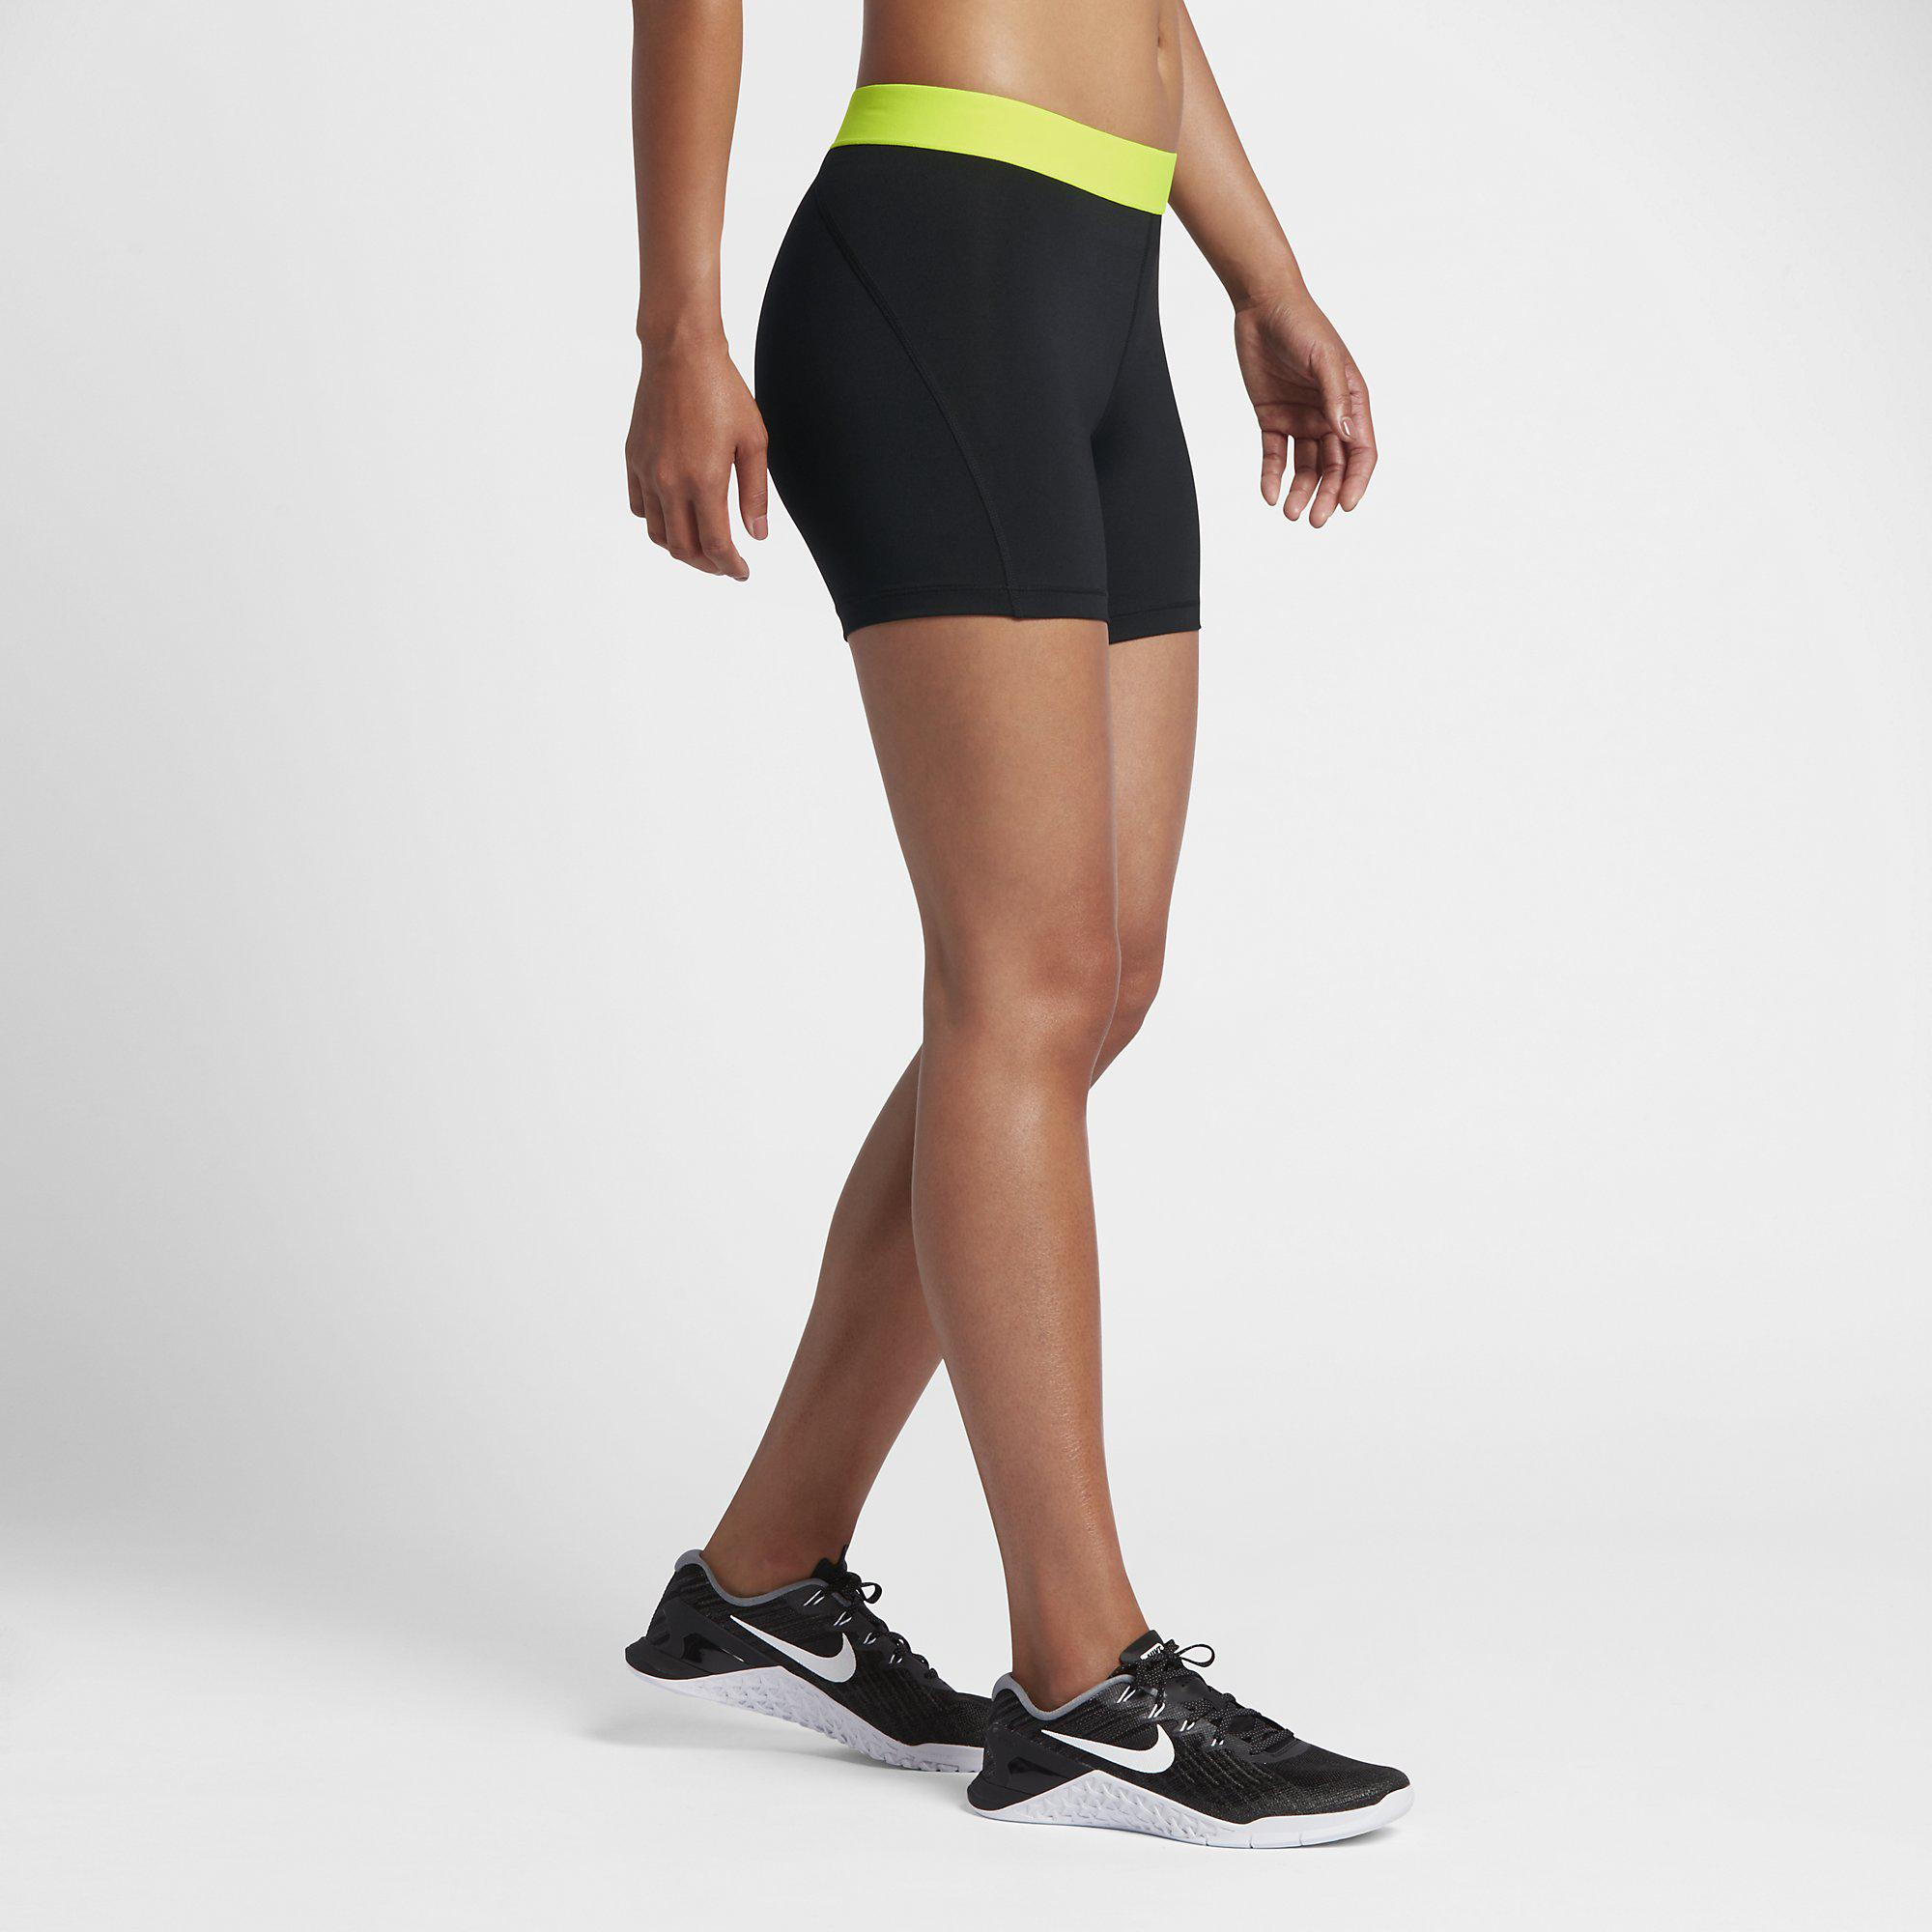 477d253b71d Nike Womens Pro Training Shorts - Black Volt - Tennisnuts.com